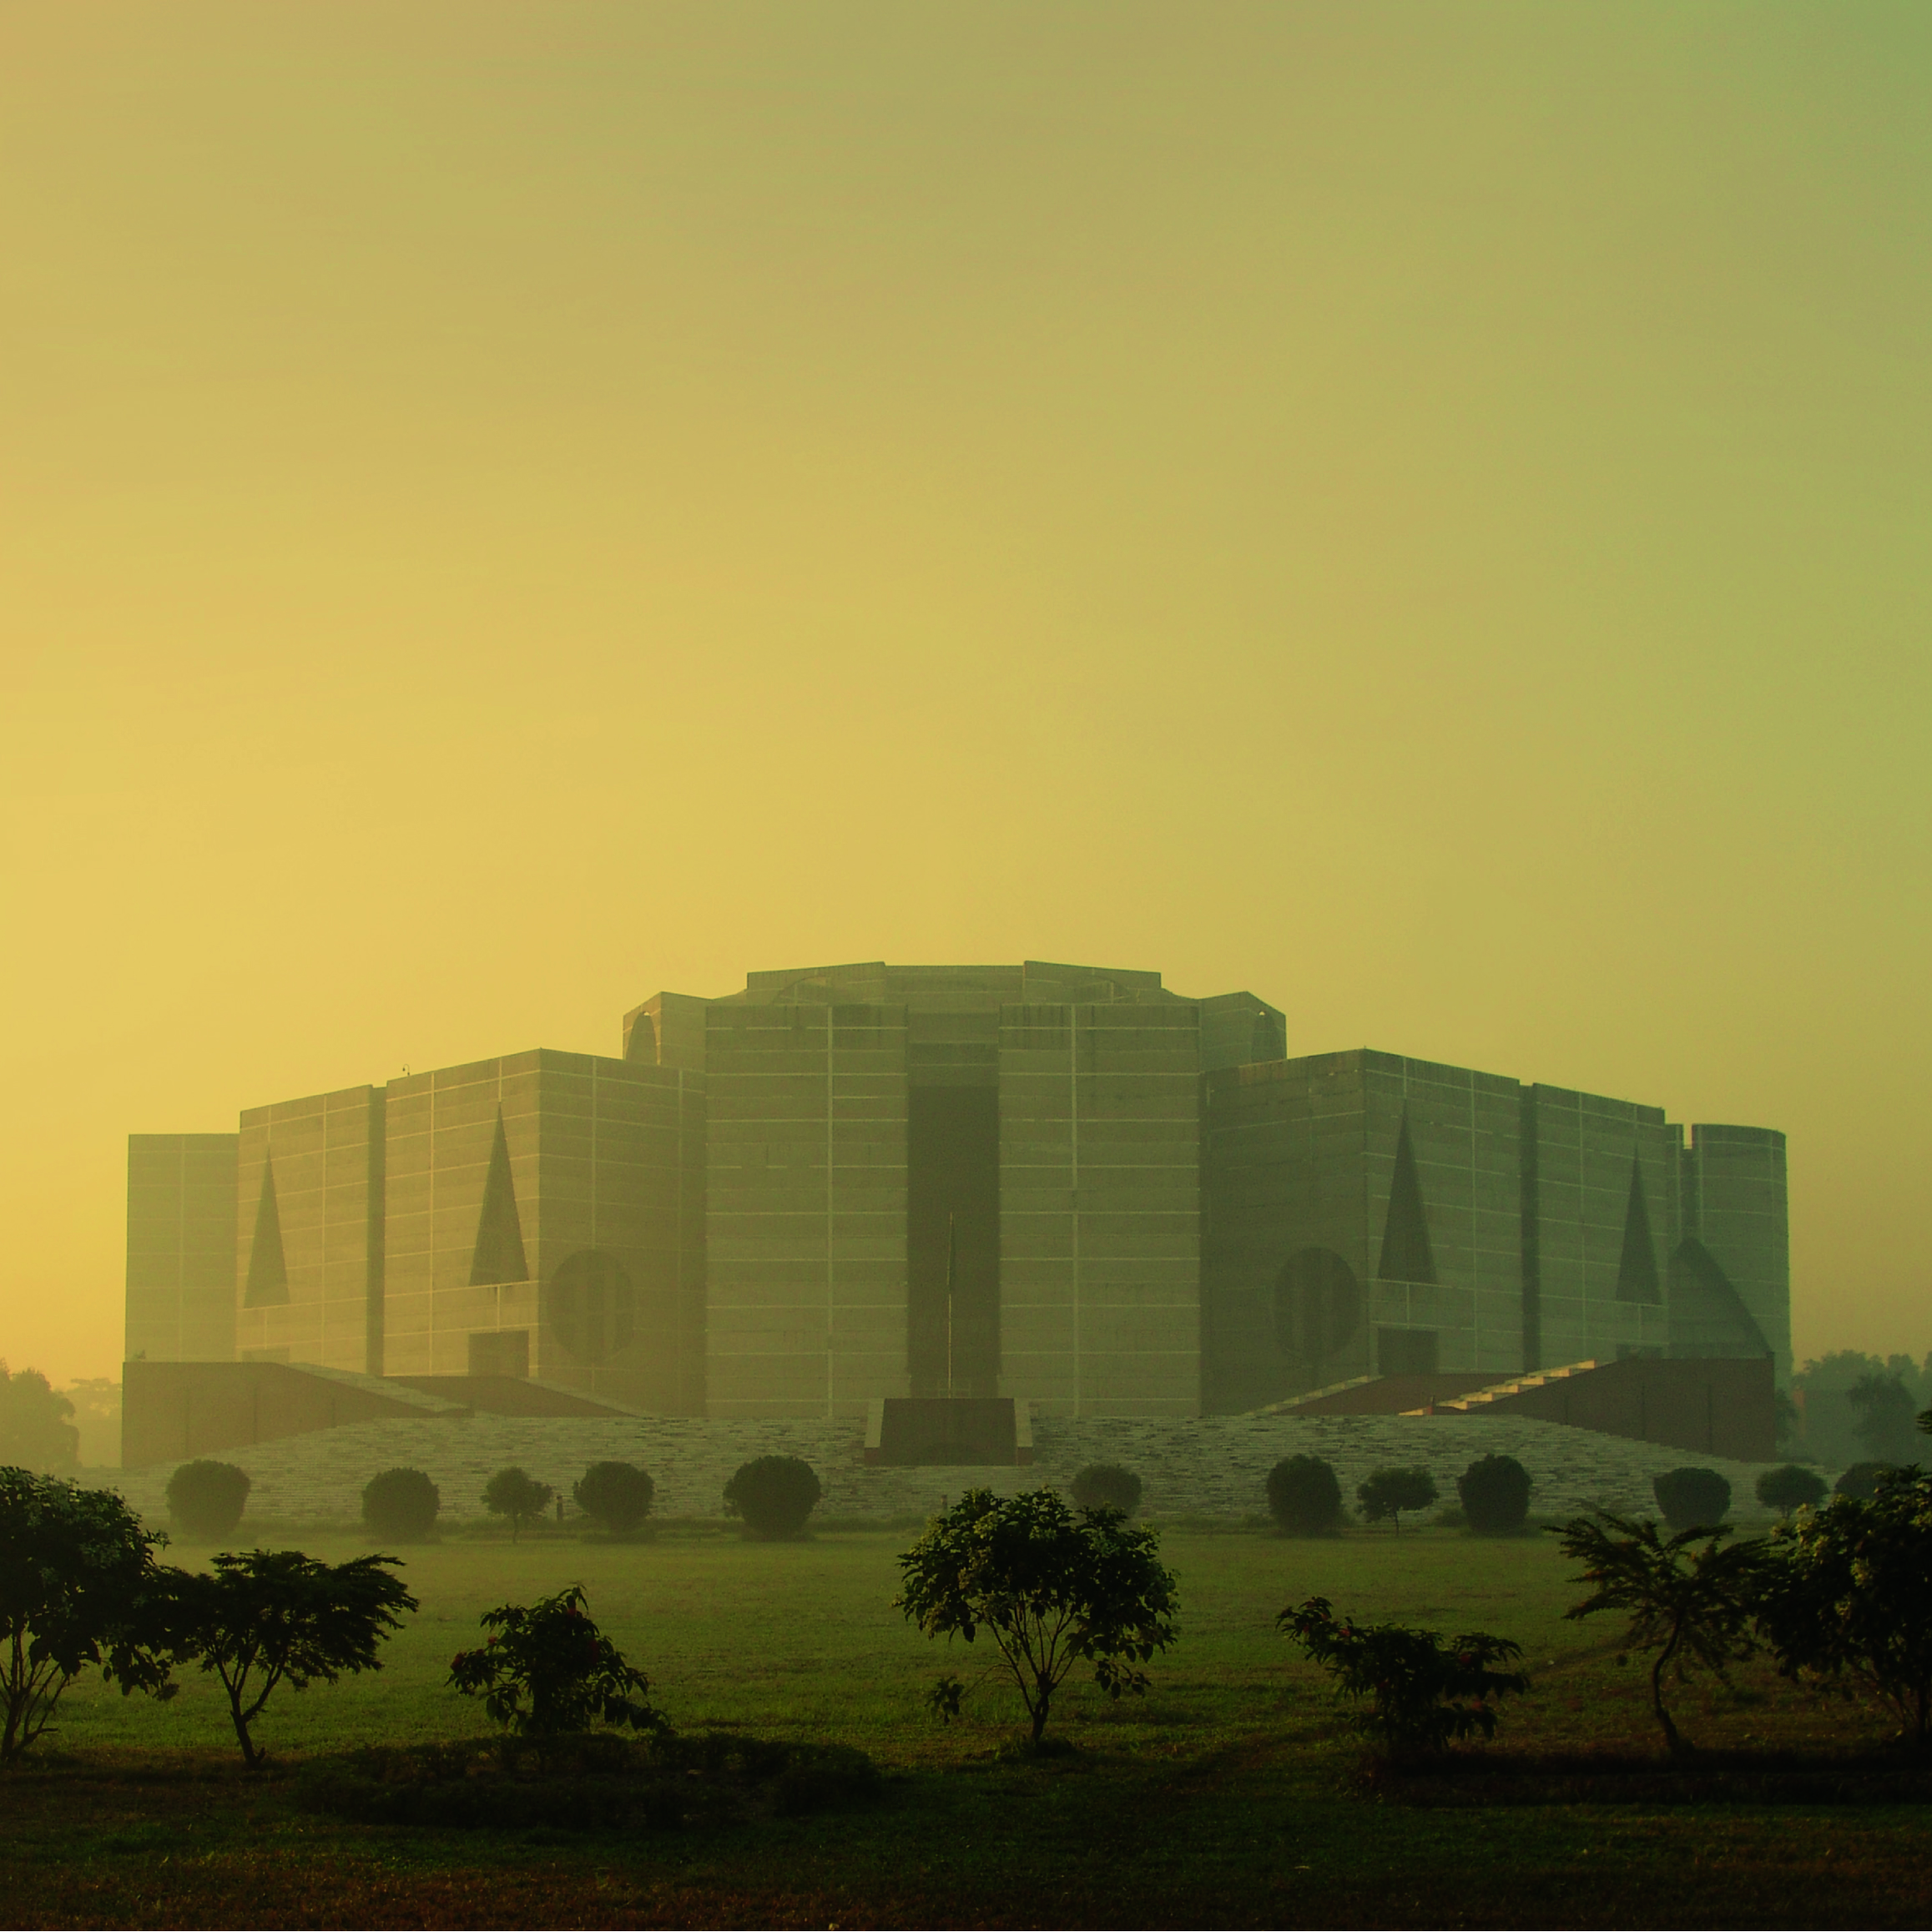 A view of the Bangladesh National Parliament building in Dhaka, built between 1962 and 1983.